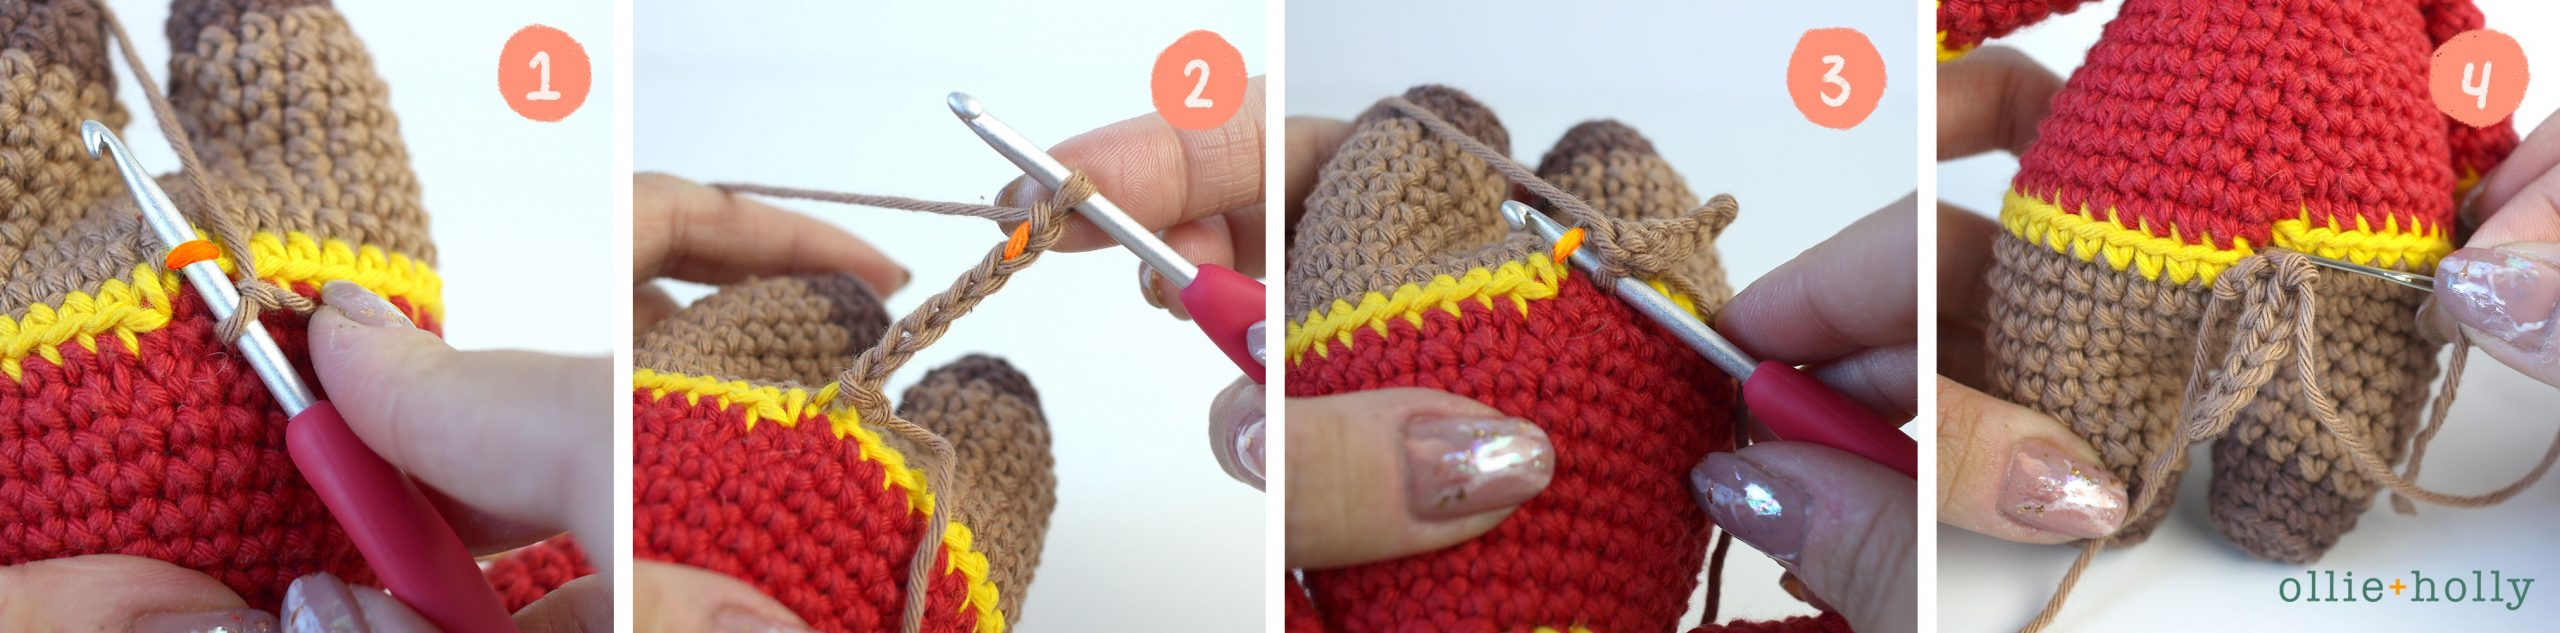 Free Year of the Ox Chinese Lunar New Year Amigurumi Crochet Pattern Step 21